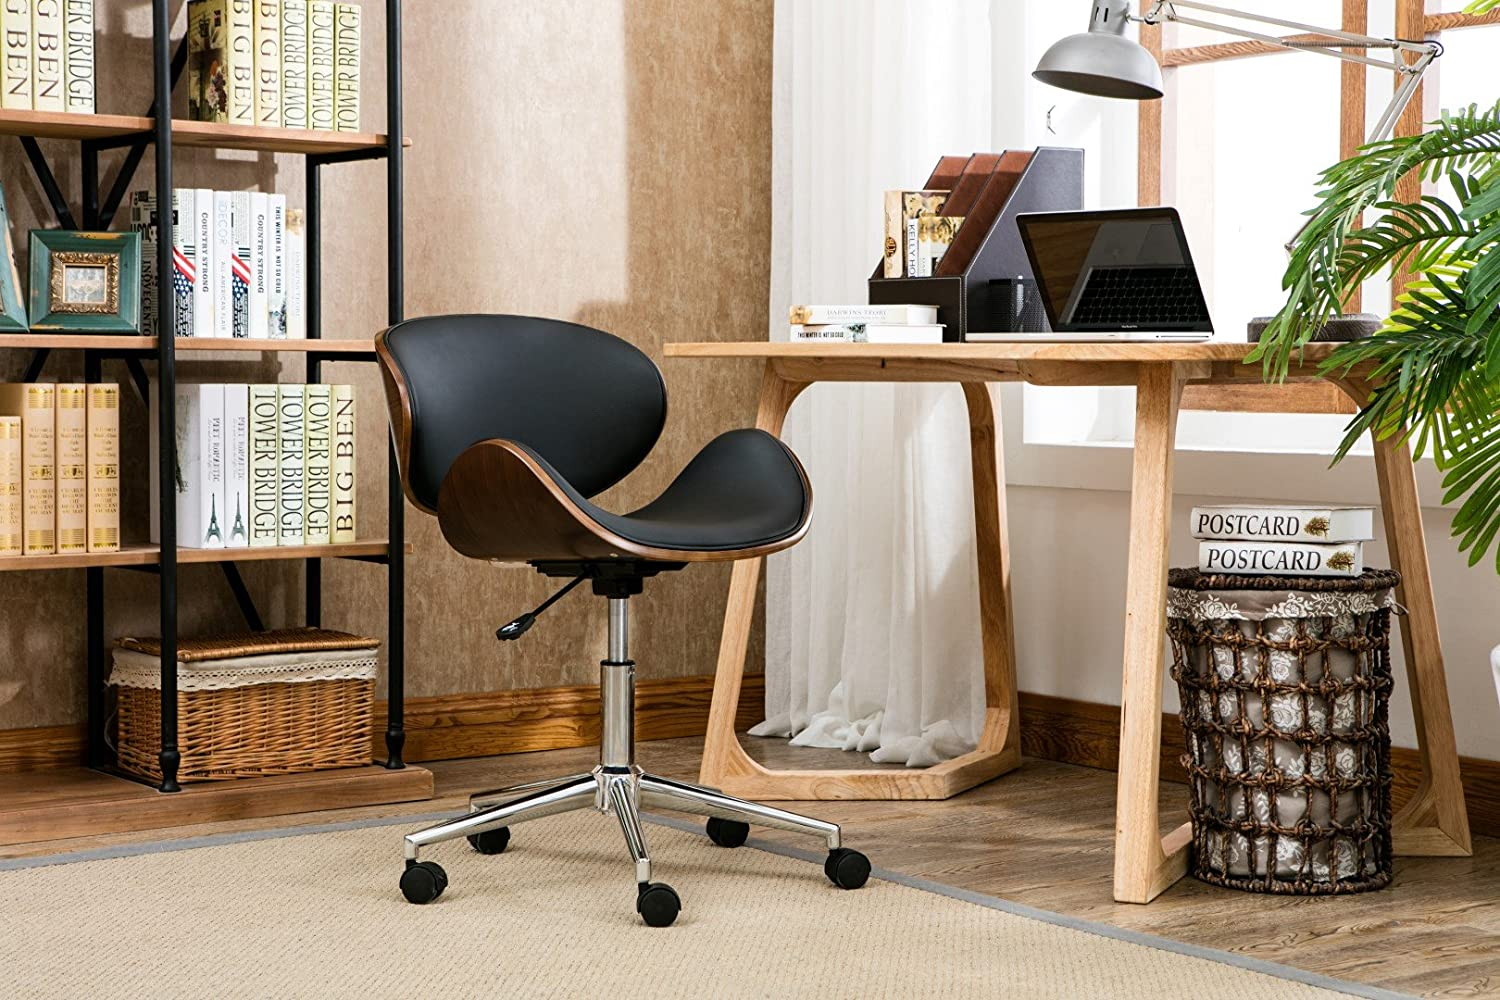 Porthos Home Rylan Office Chair a Classy Executive Office Chair, with 5 Easy Glide Caster Wheels Height Adjustable, 360-degree Swivel, Fabulous Home Office Chair Size 24 x 23 x 35 inches